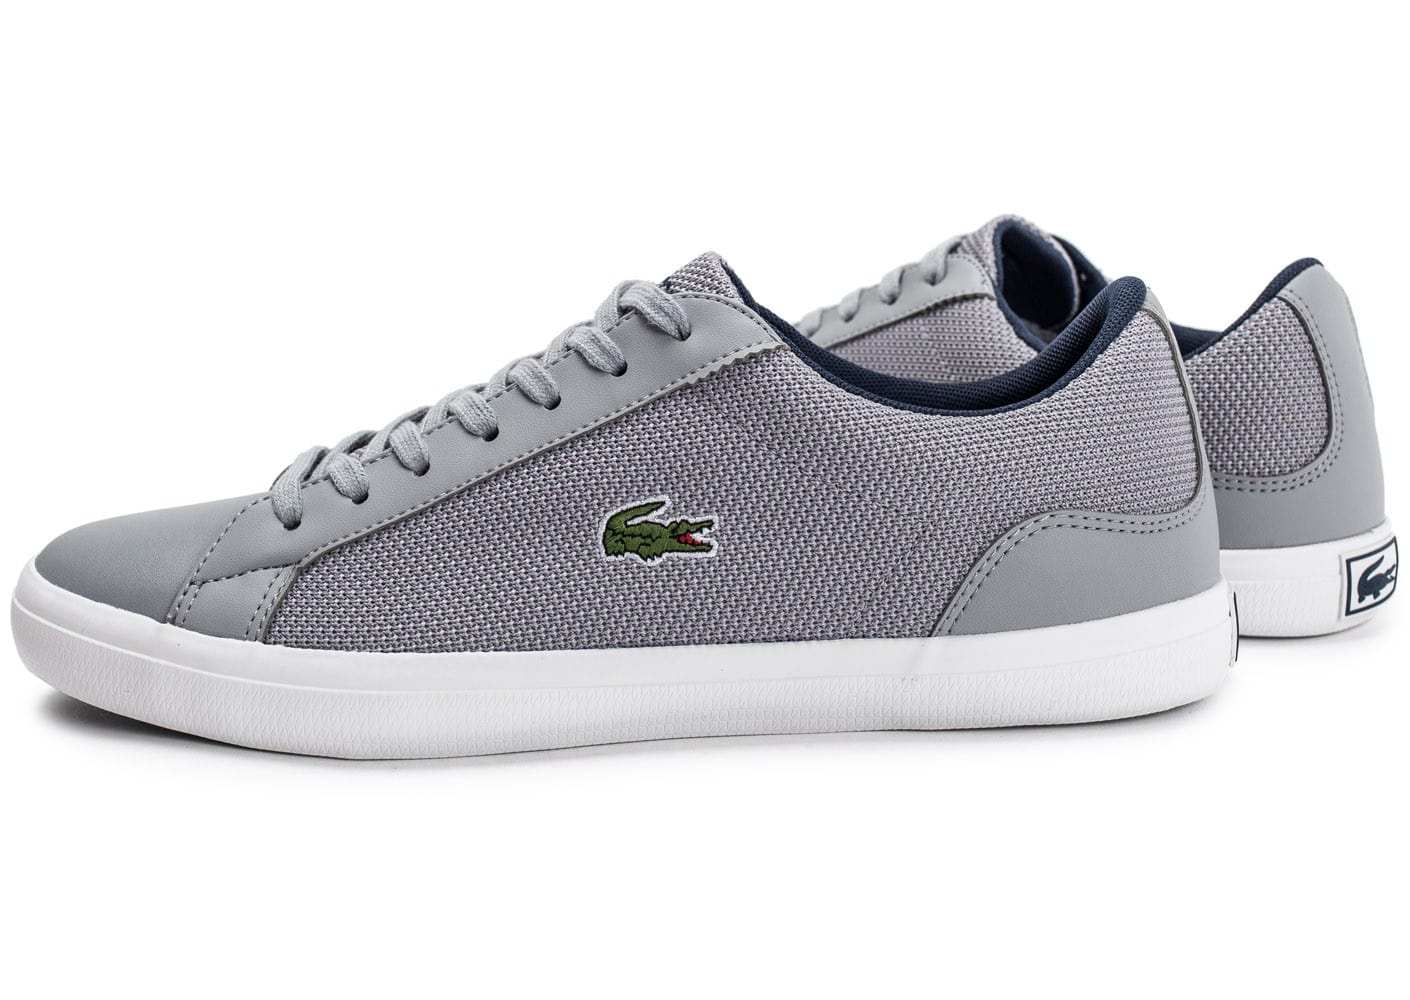 Chaussures Lacoste grises Urbaines homme Bruetting Mount Shasta High xuAs1b